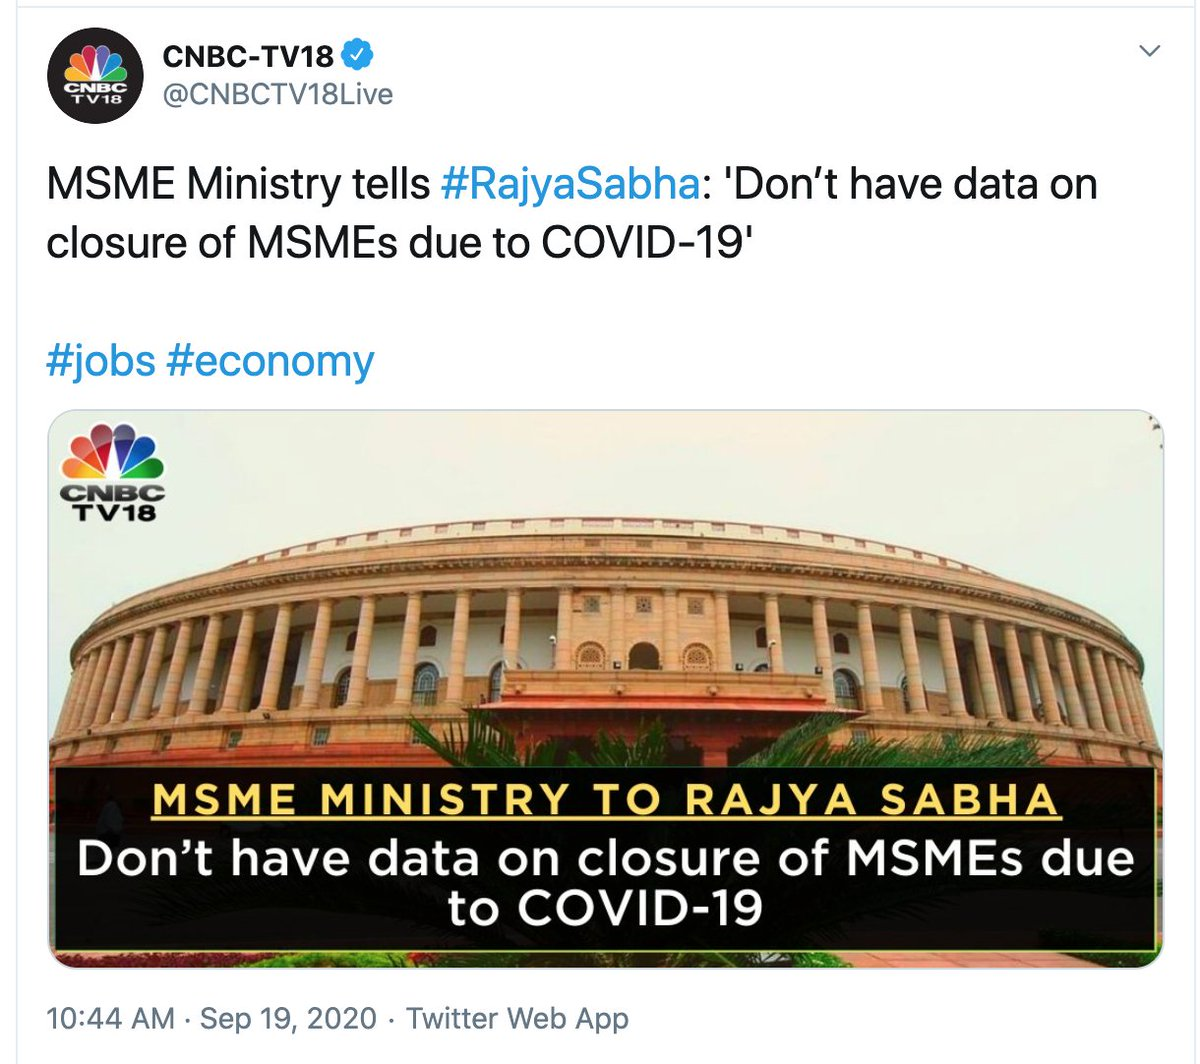 Why is it that the government claims big numbers for job creation but they have no clue how many jobs lost and how many MSMEs shut down?  #Media #SpeakUp https://t.co/x3PycJ9wbw